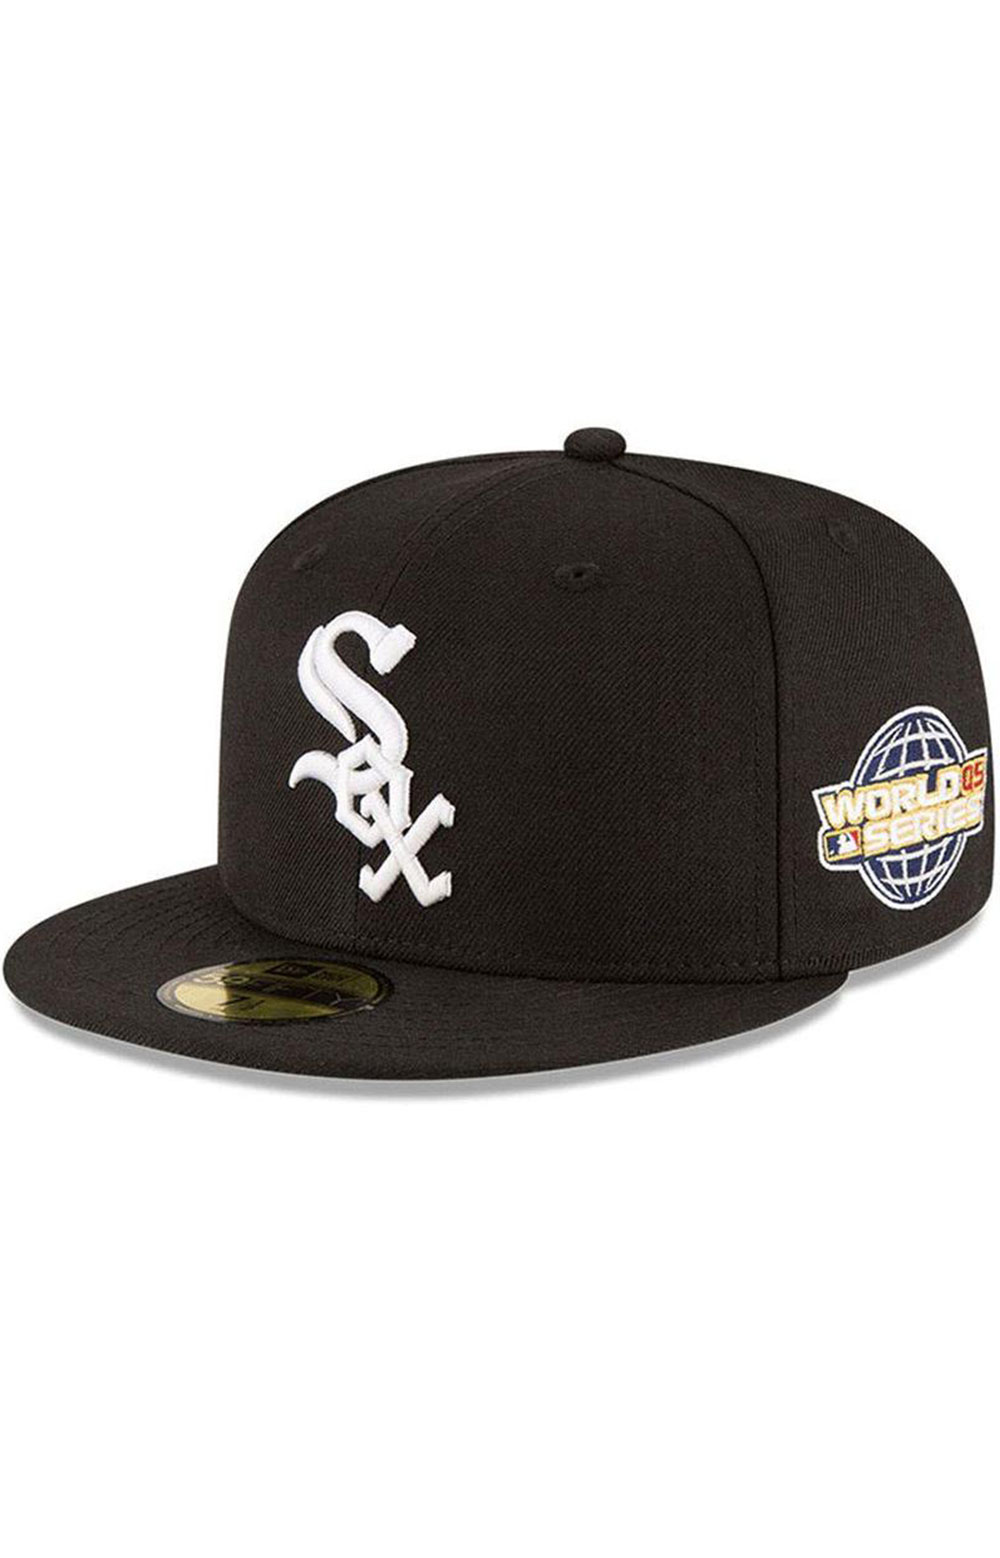 Chicago White Sox 2005 World Series Wool 59Fifty Fitted Hat